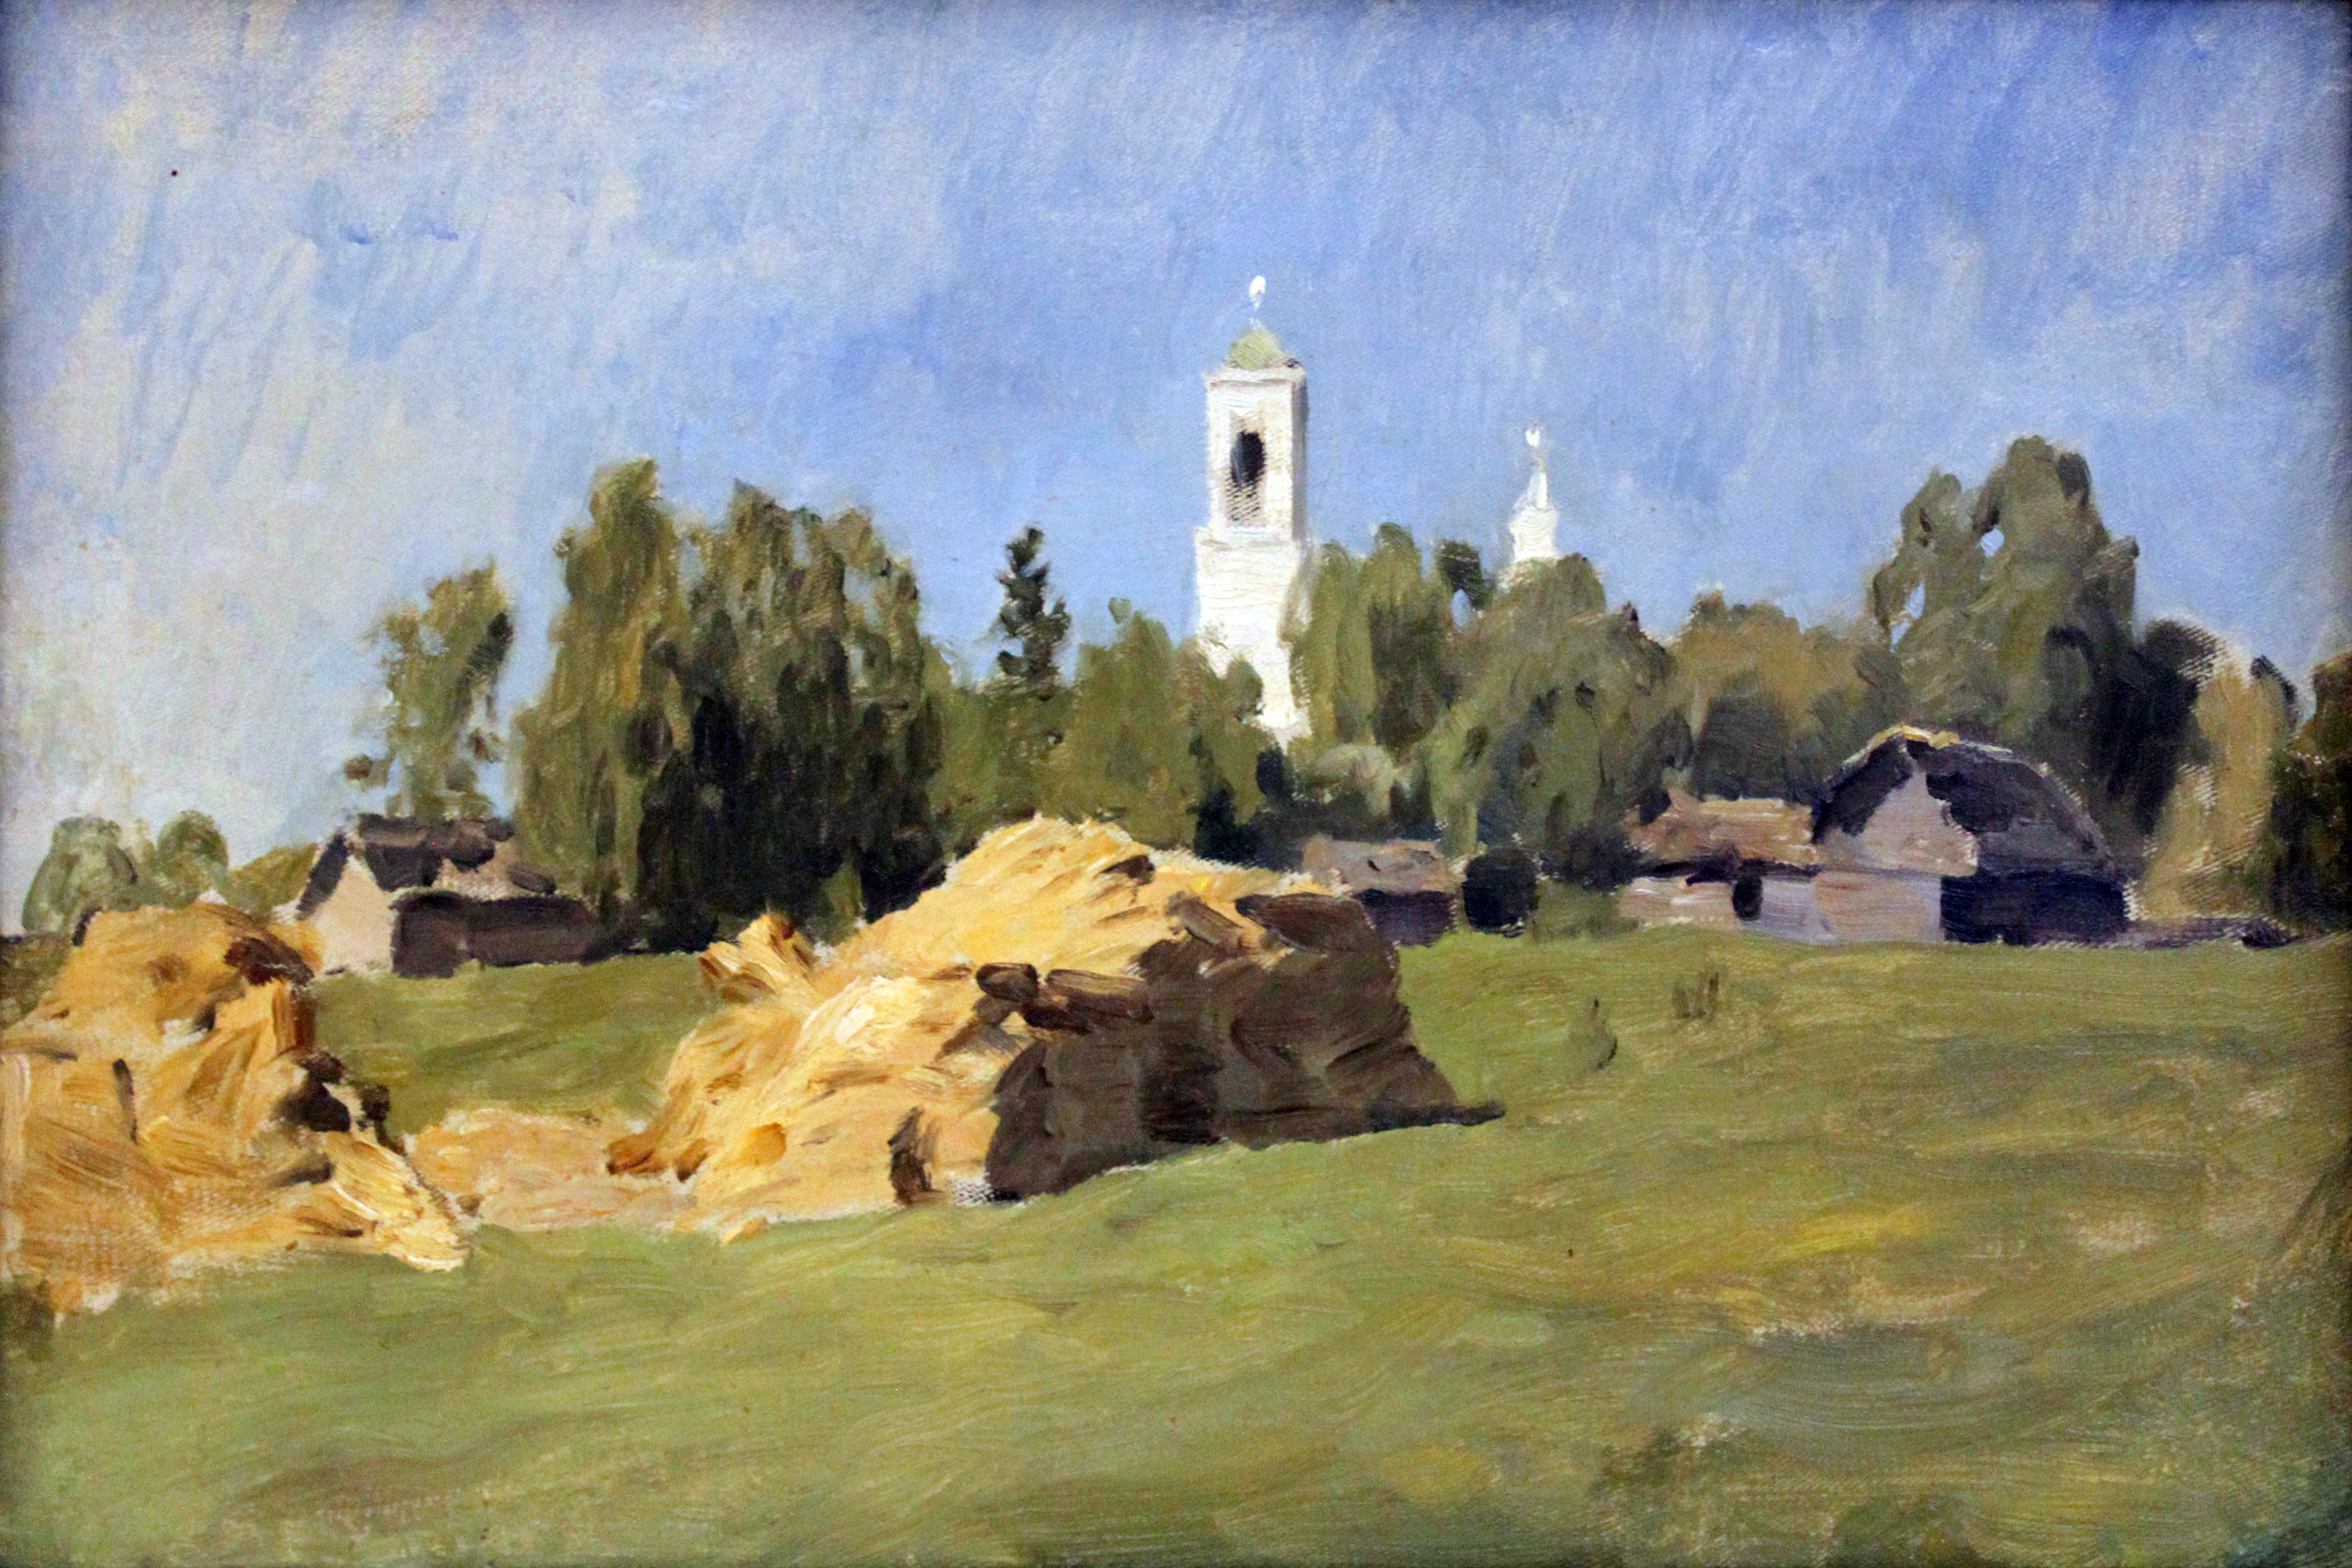 Original file ‎ (4,752 × 3,168 pixels, file size: 9.83 MB, MIME ...: https://commons.wikimedia.org/wiki/File:1889_Levitan_Laendliche...